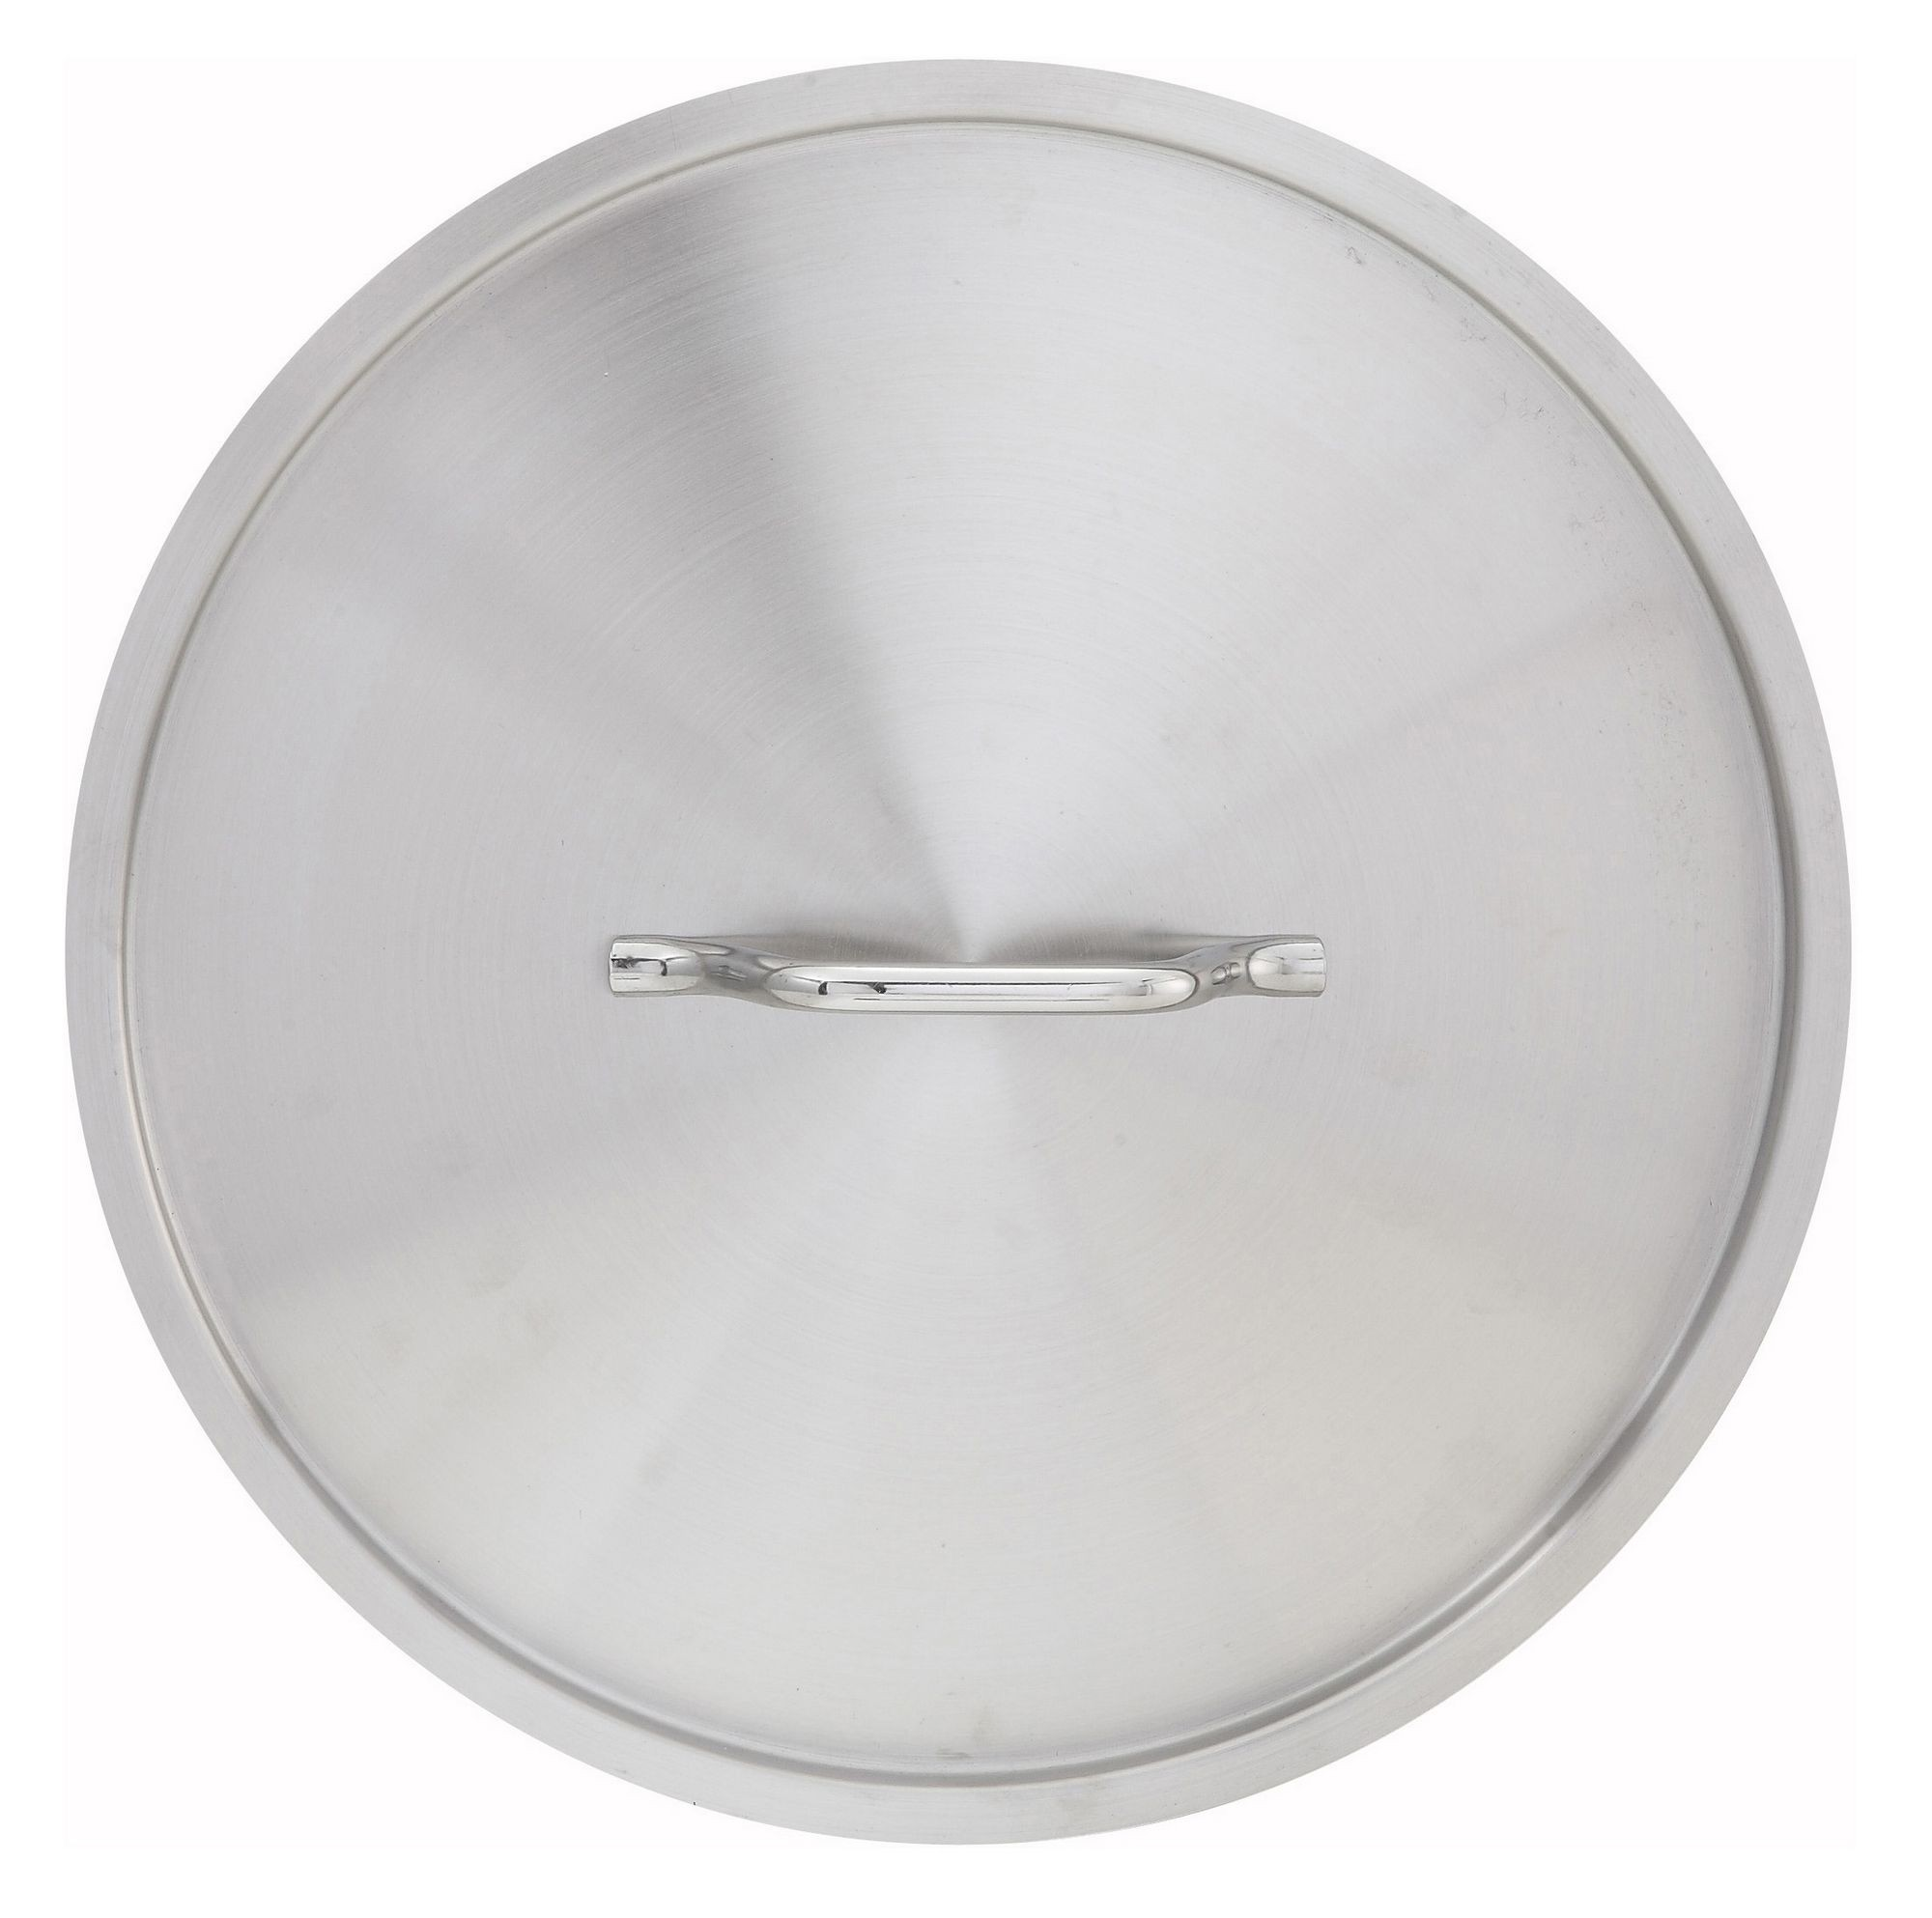 Winco sstc-10 Stainless Steel Cover for 12 Qt. Double Boiler SSDB-12